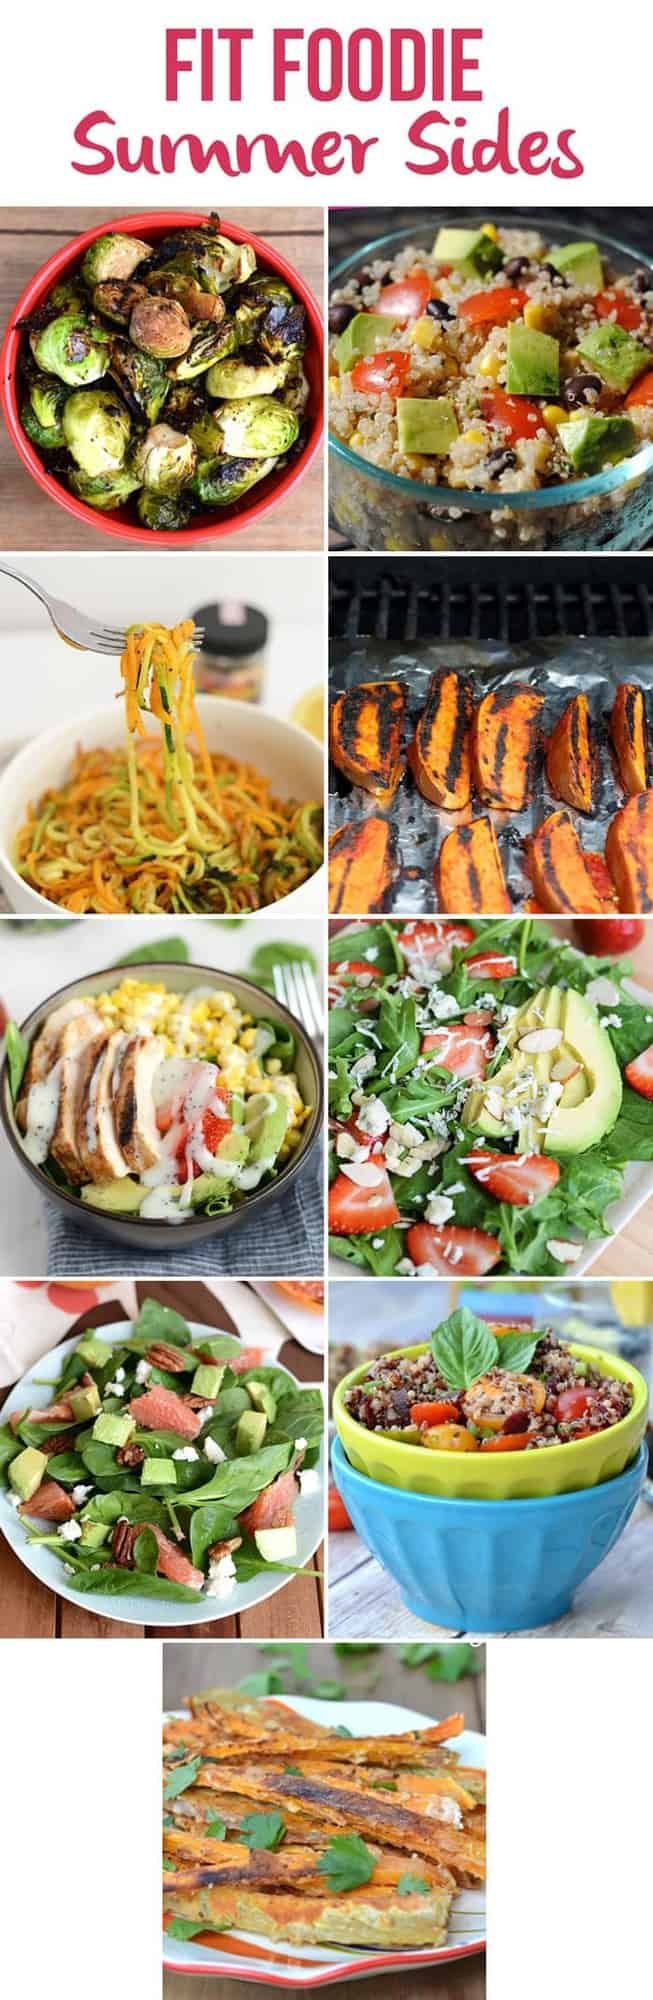 Fit Foodie Summer Sides + 33 other Healthy Summertime Recipes! via FitFoodieFinds.com